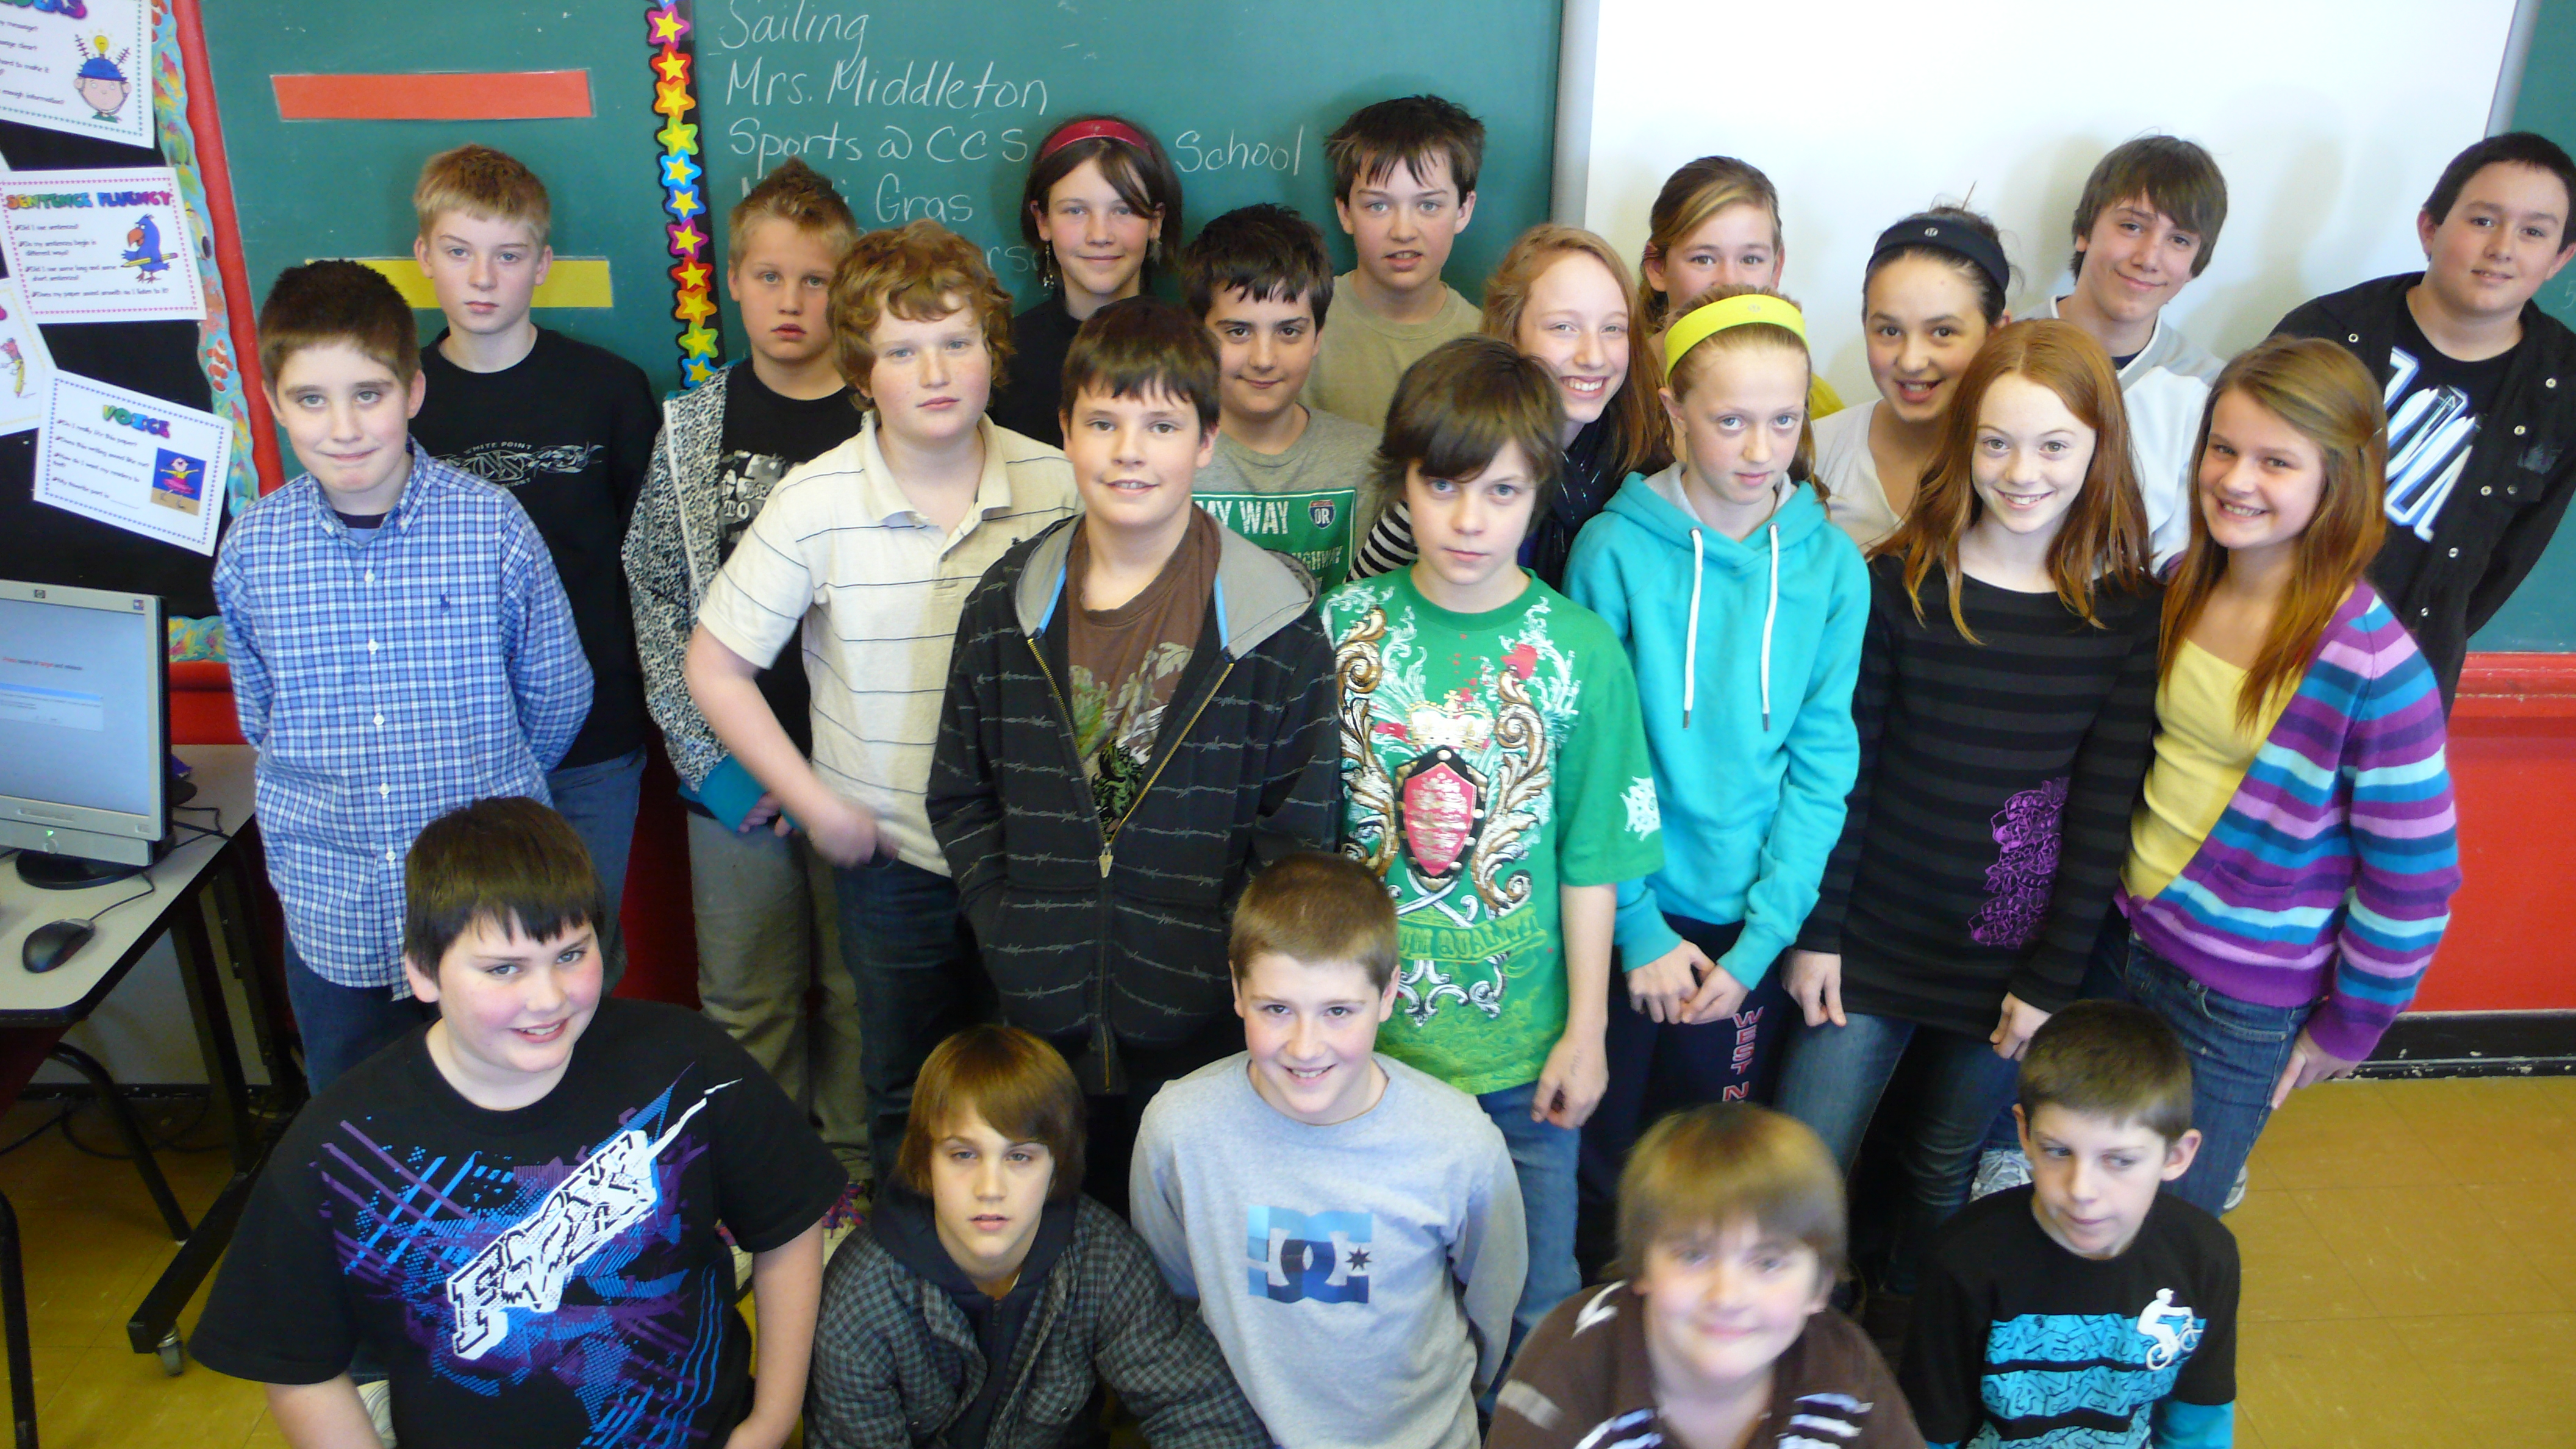 Mrs Hunt S Grade 6 Class At Centre Consolidated Publishes